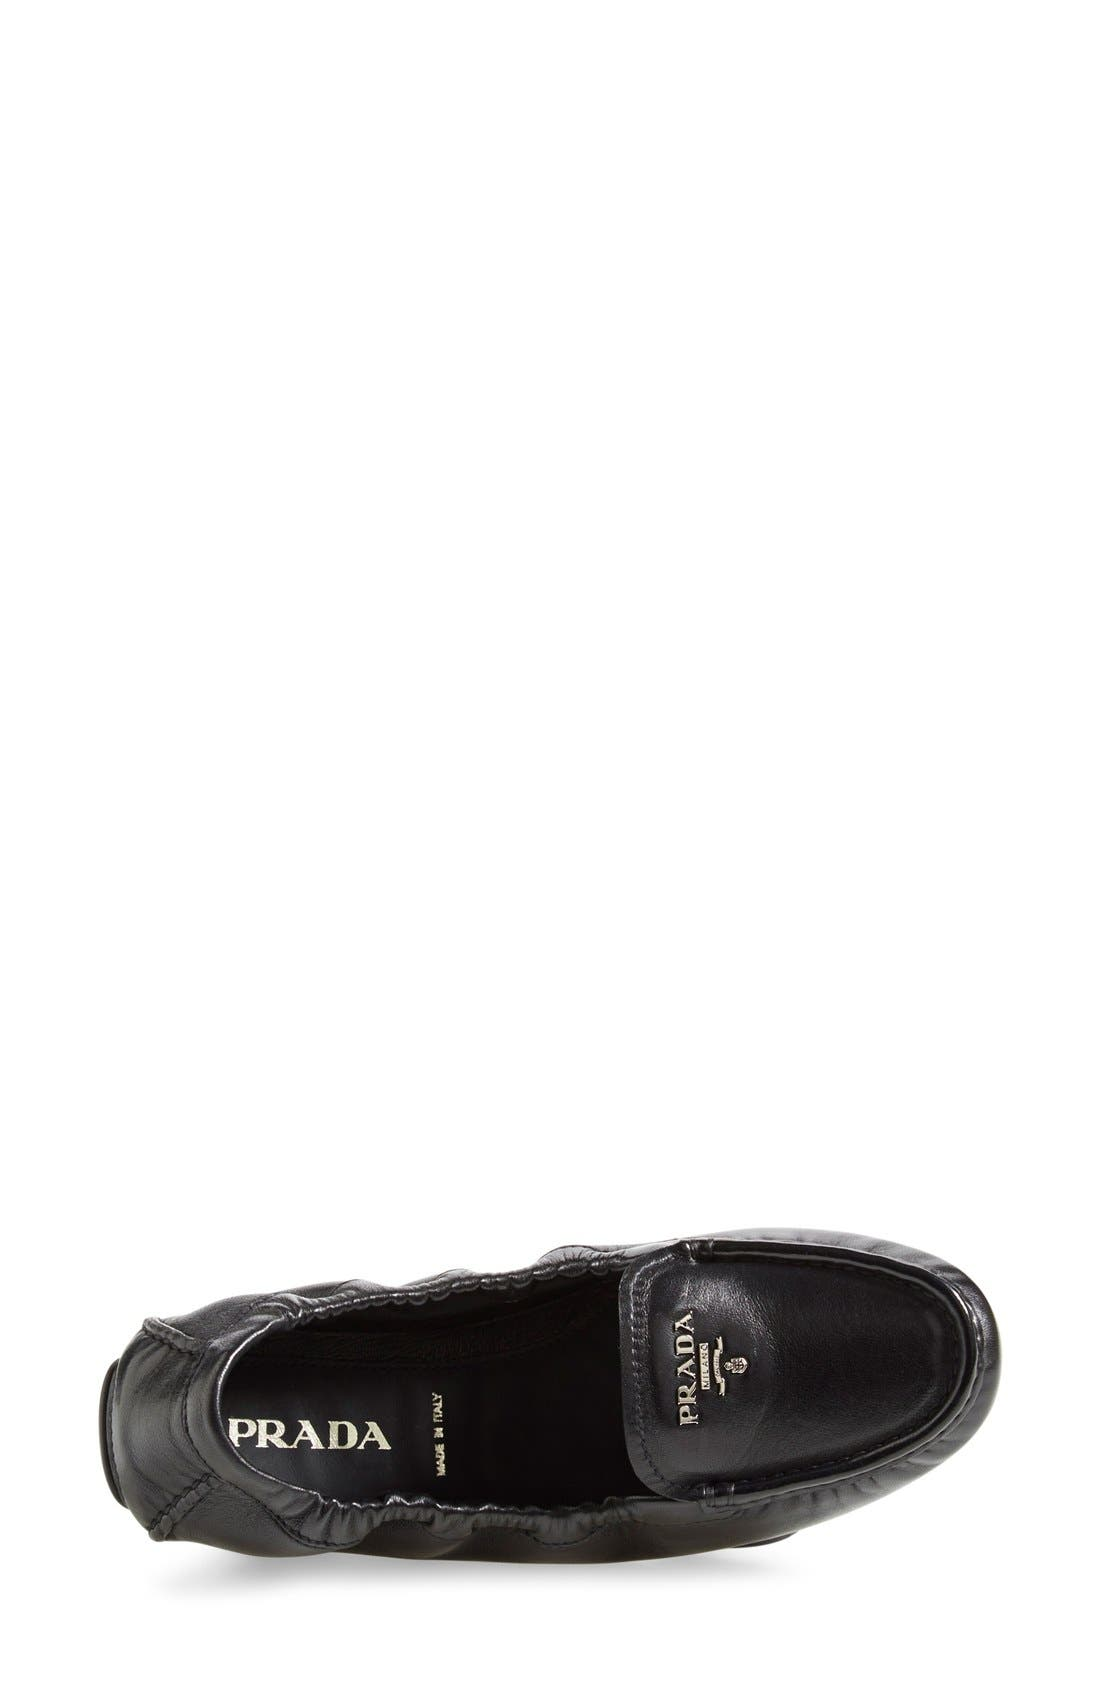 'Scrunch' Driving Loafer,                             Alternate thumbnail 3, color,                             Black Leather